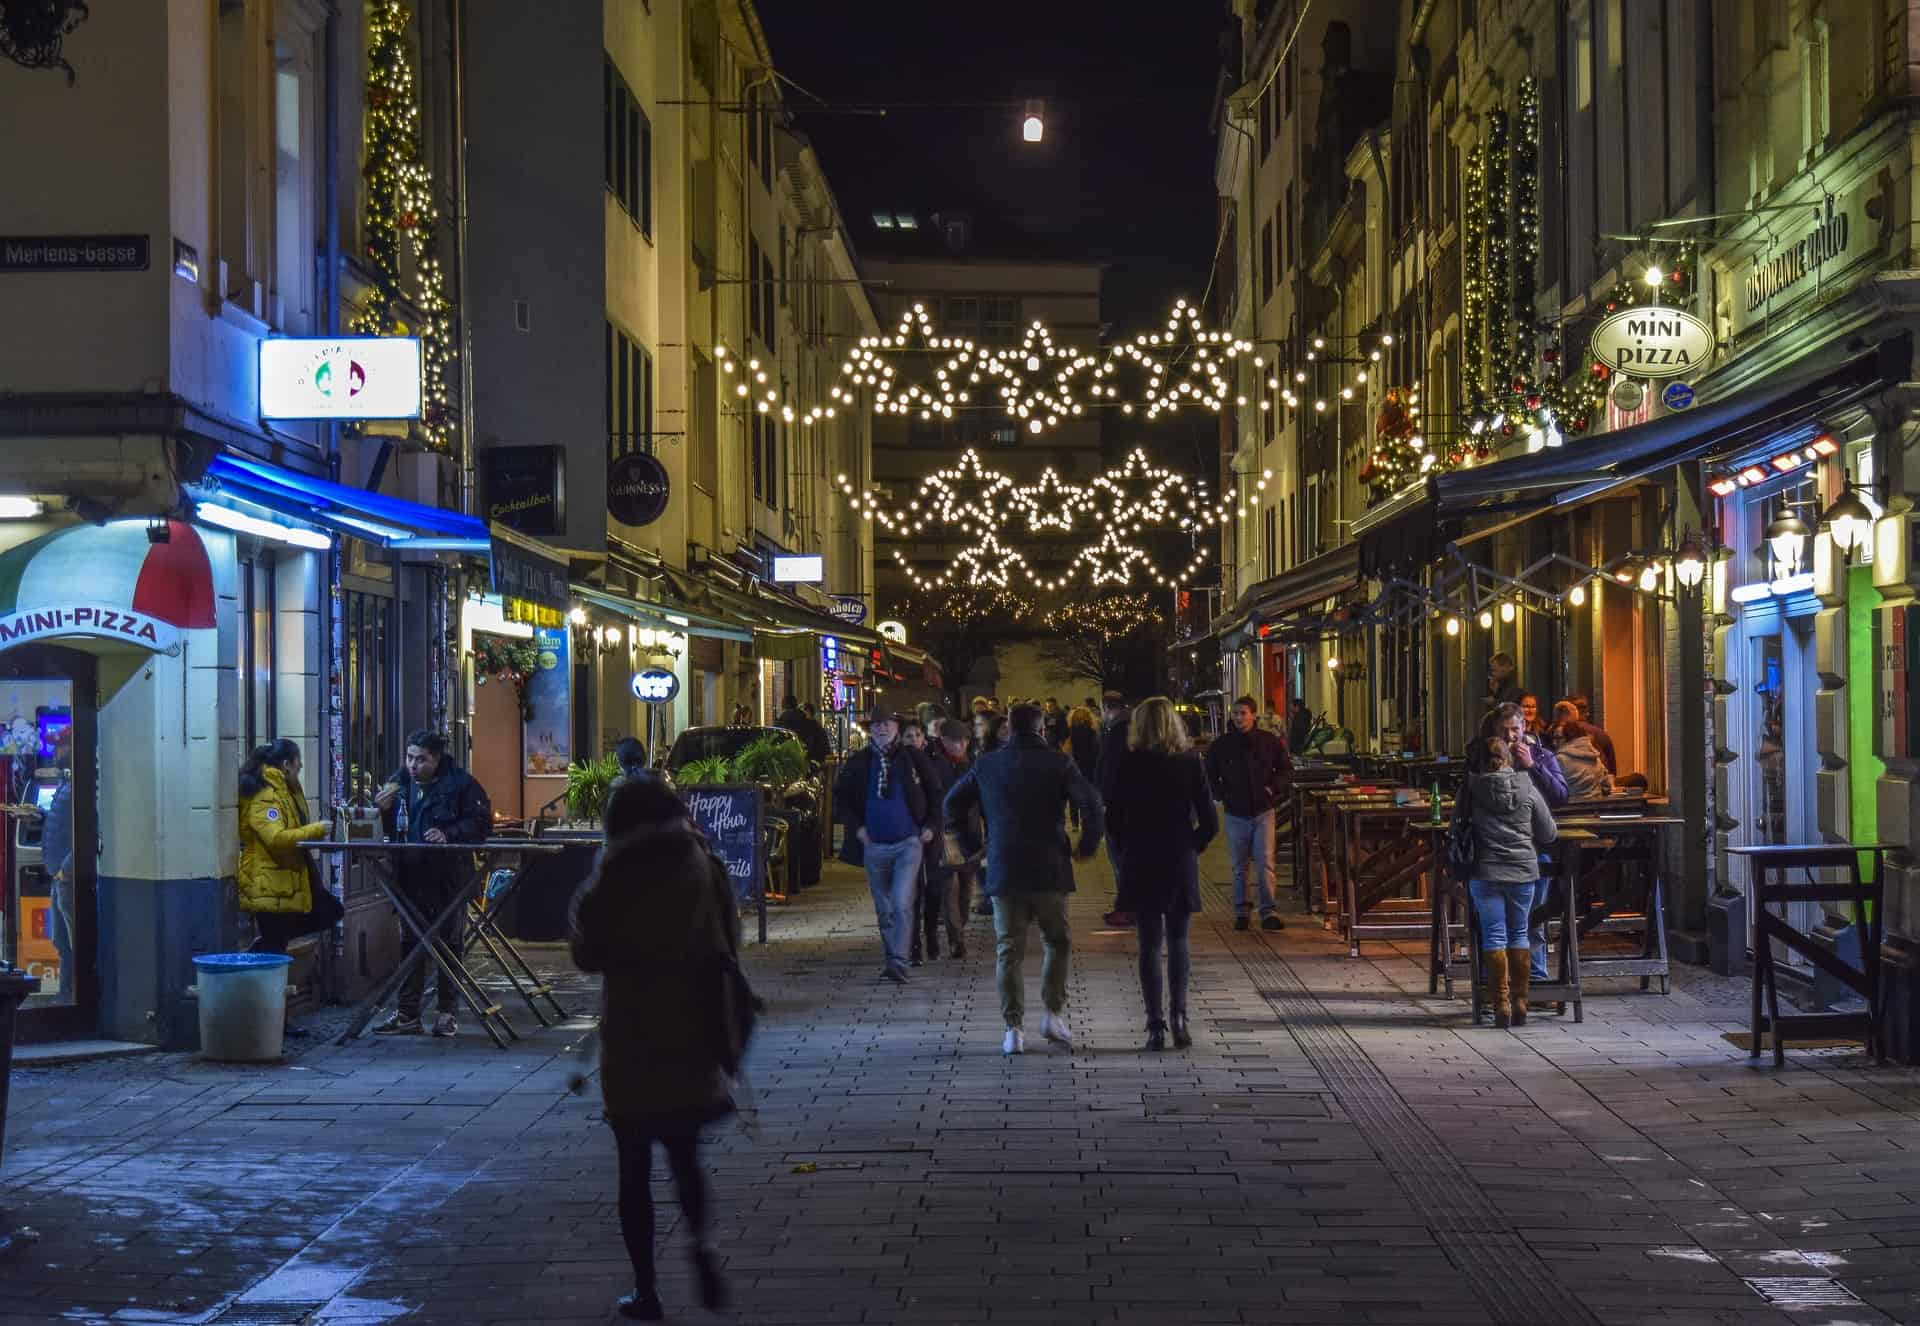 An image of a town centre at Christmas.